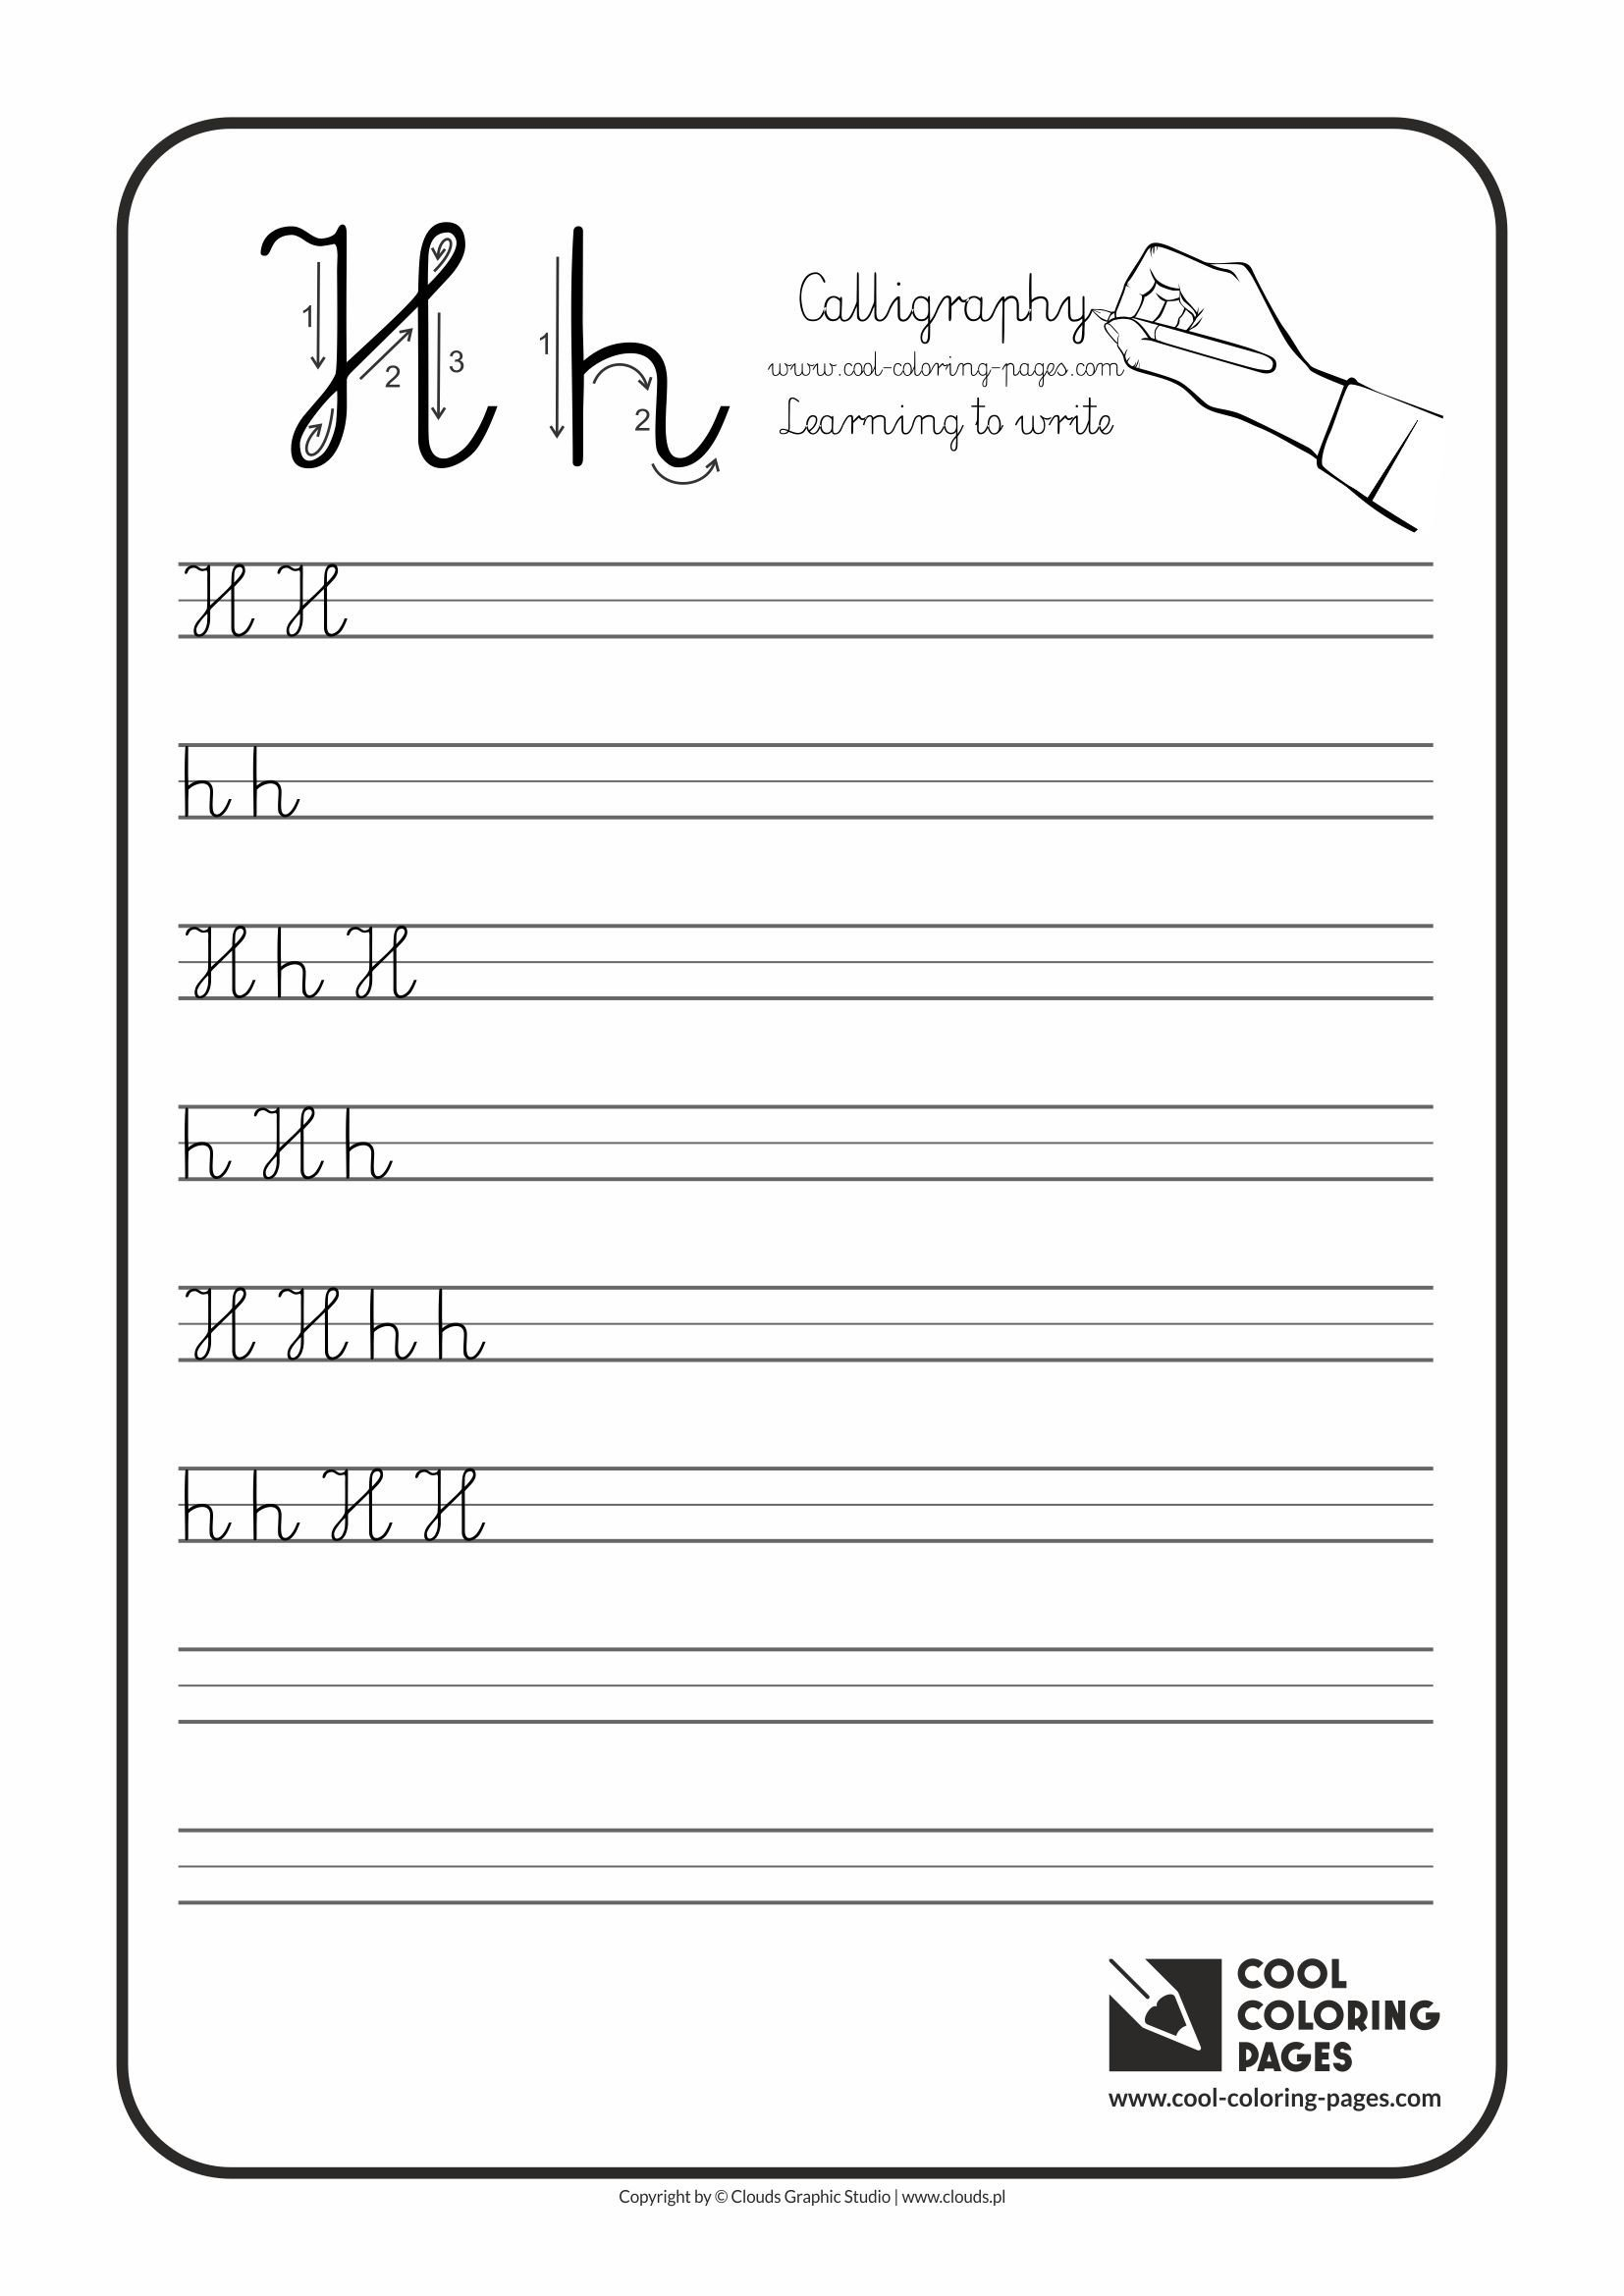 Letter H Traceable Worksheets Cool Coloring Pages Letter H Calligraphy for Kids Cool